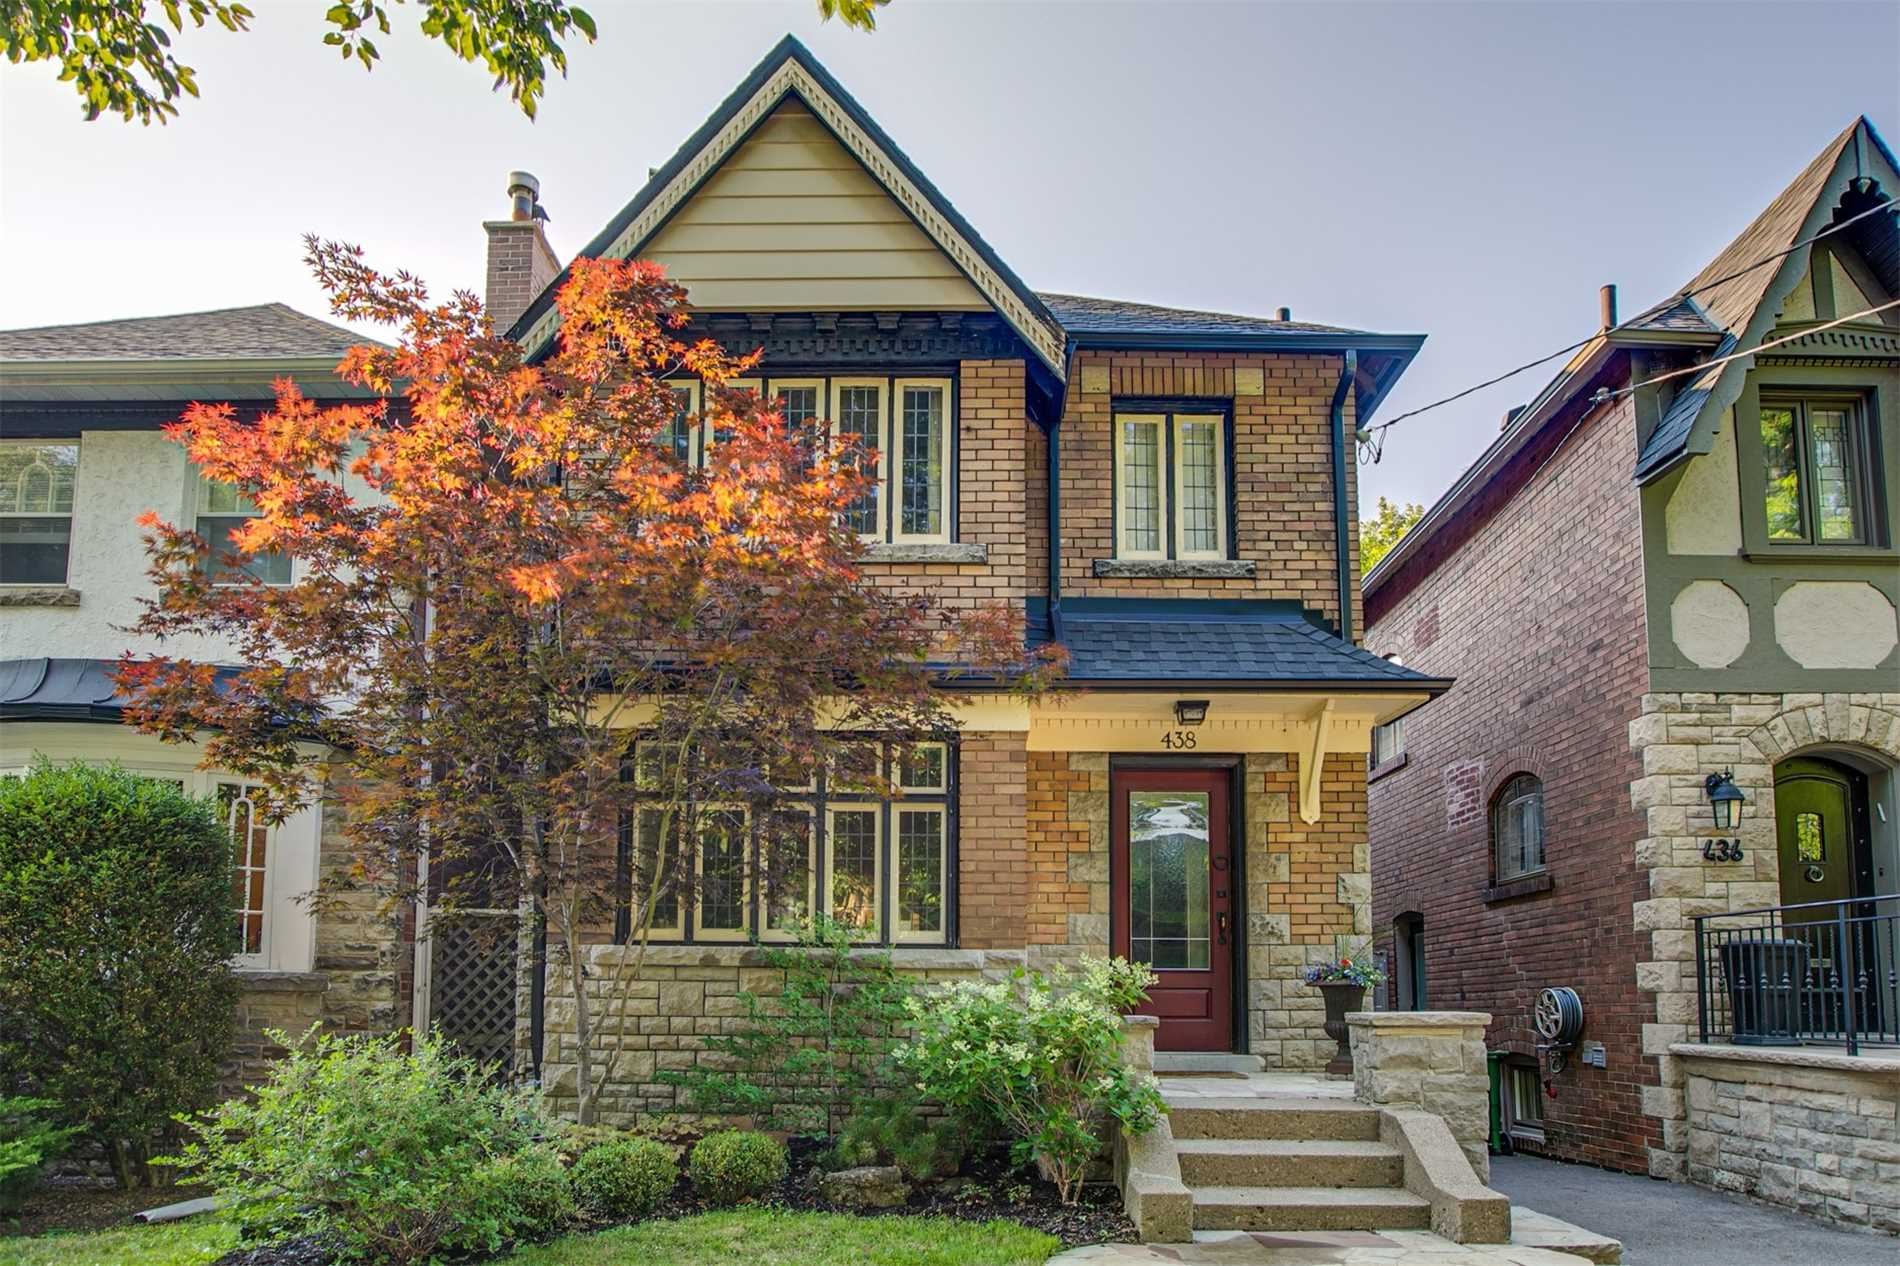 438 St Clements Ave, Toronto, M5N 1M1